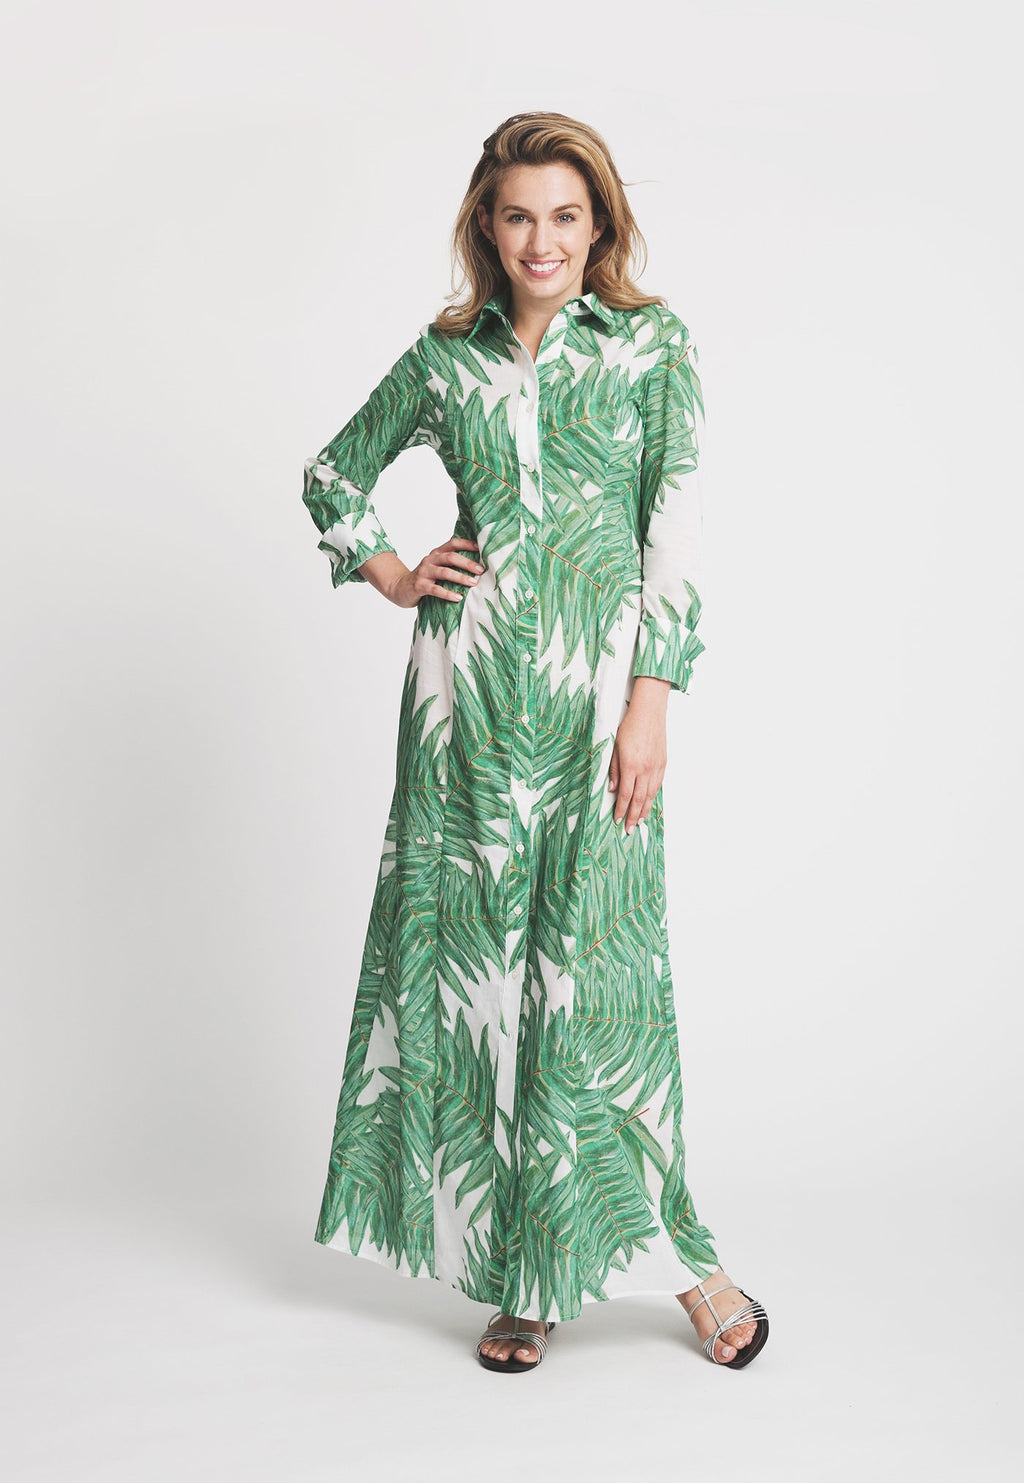 Kathe Dress in Queen Palm front view